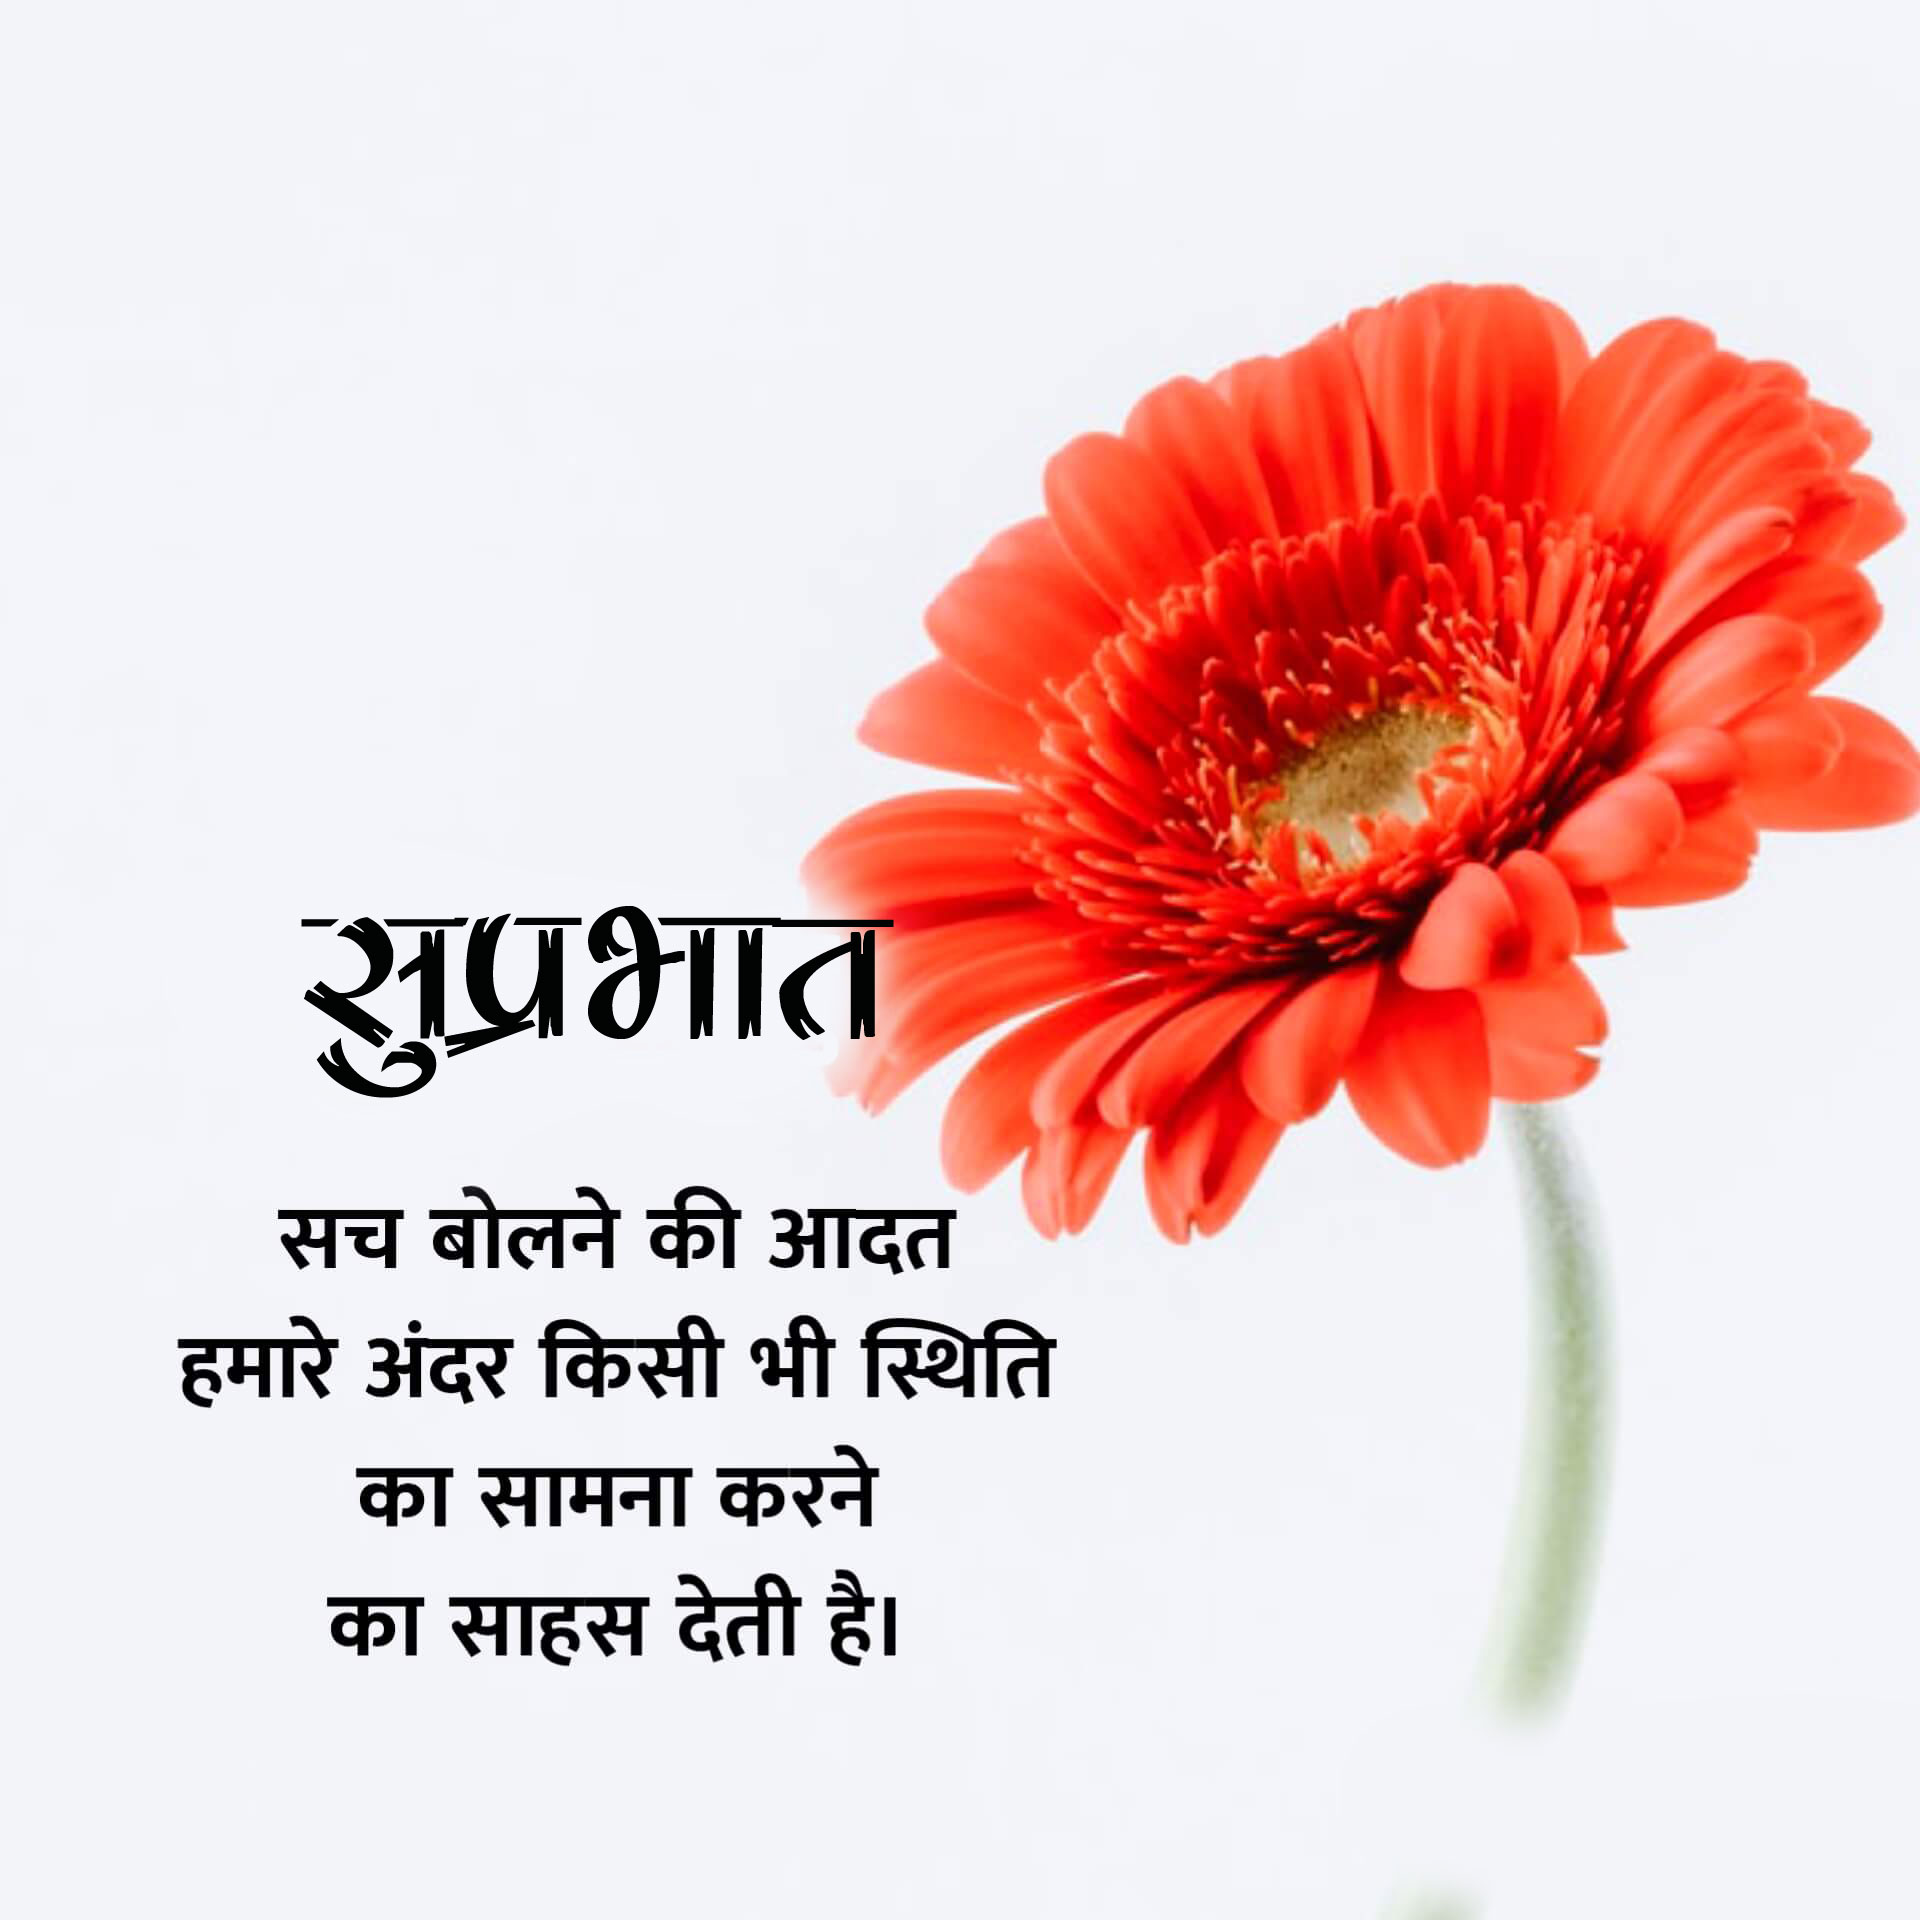 New Beautiful Suprabhat Images for download